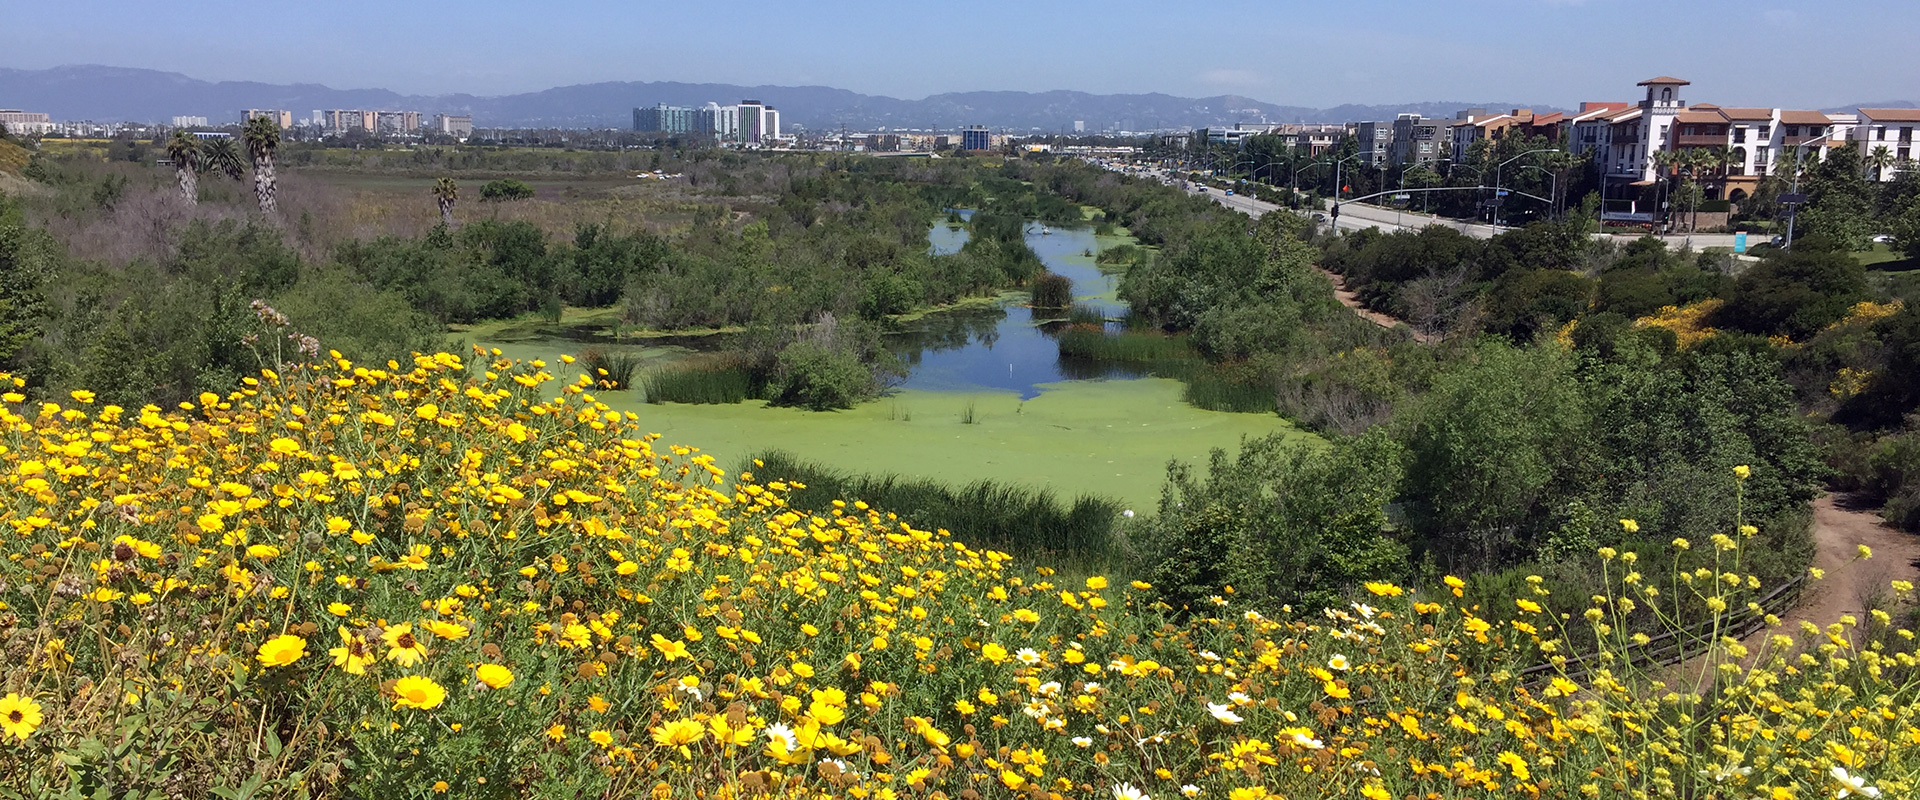 A scenic view of LMU and the neighboring Ballona Creek from a nearby trail with downtown Los Angeles in the distance